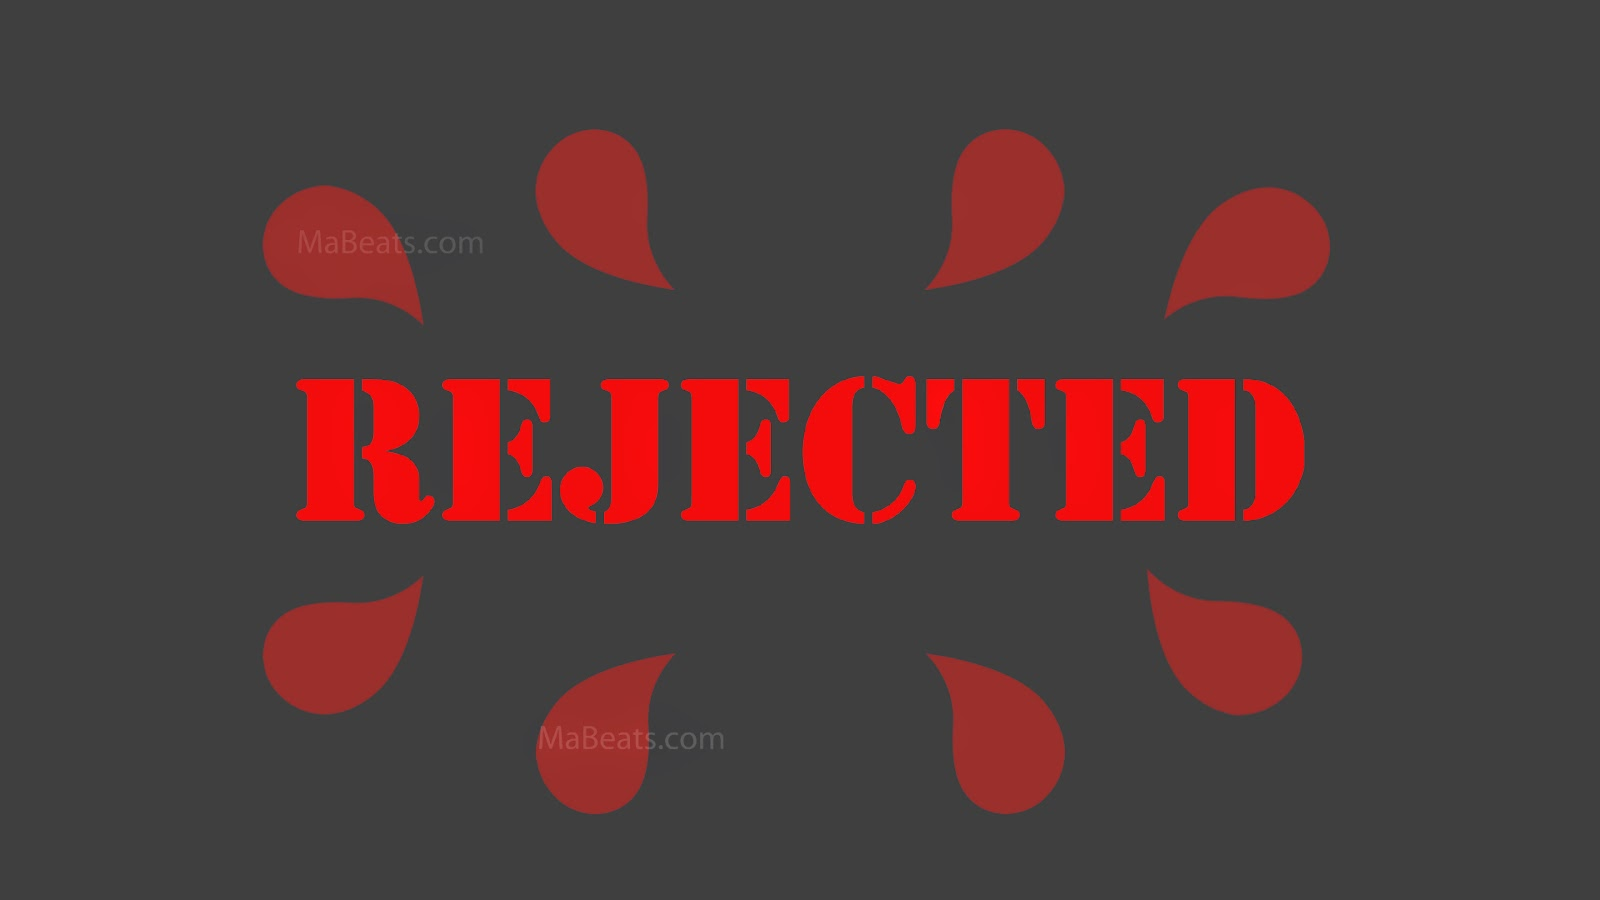 How to handle rejection - practical diversions from the negativity